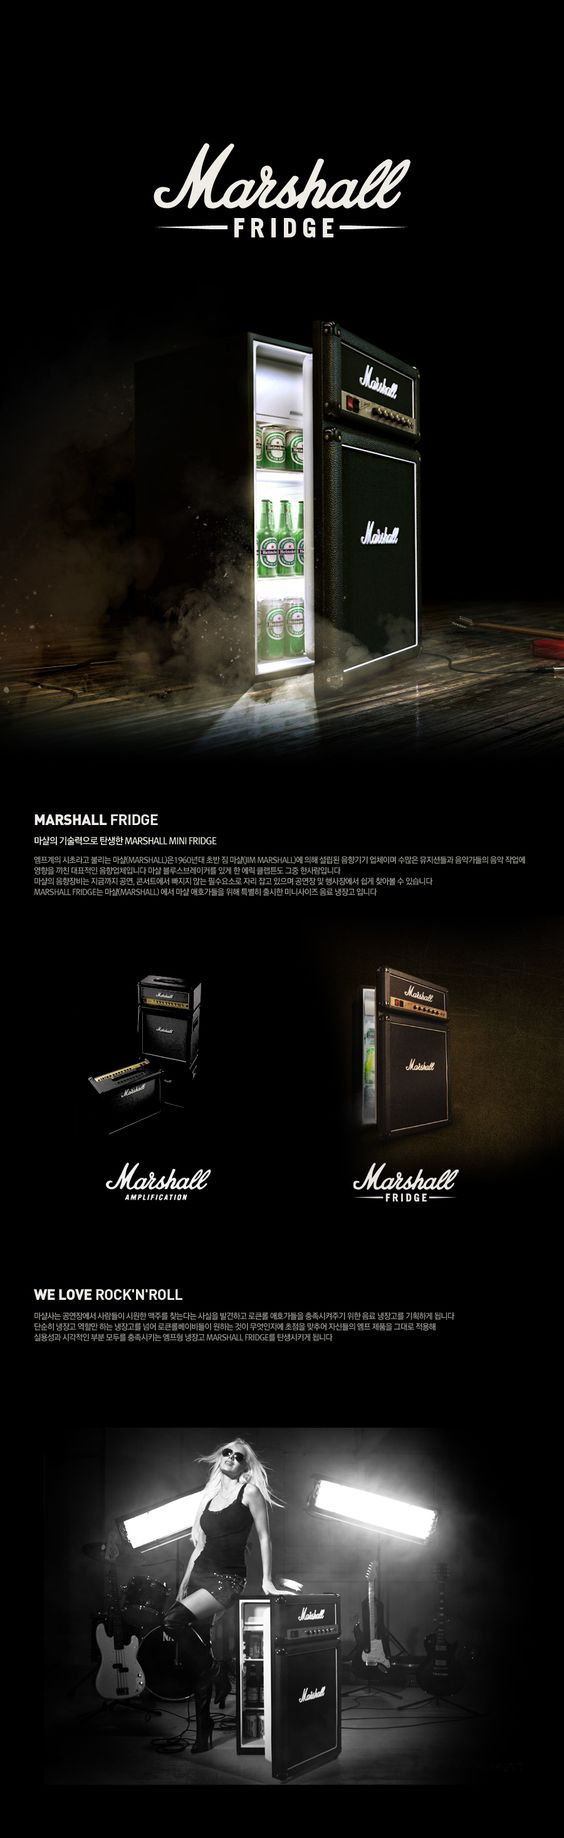 Home for the home marshall fridge - Marshall Fridge 1300k Com